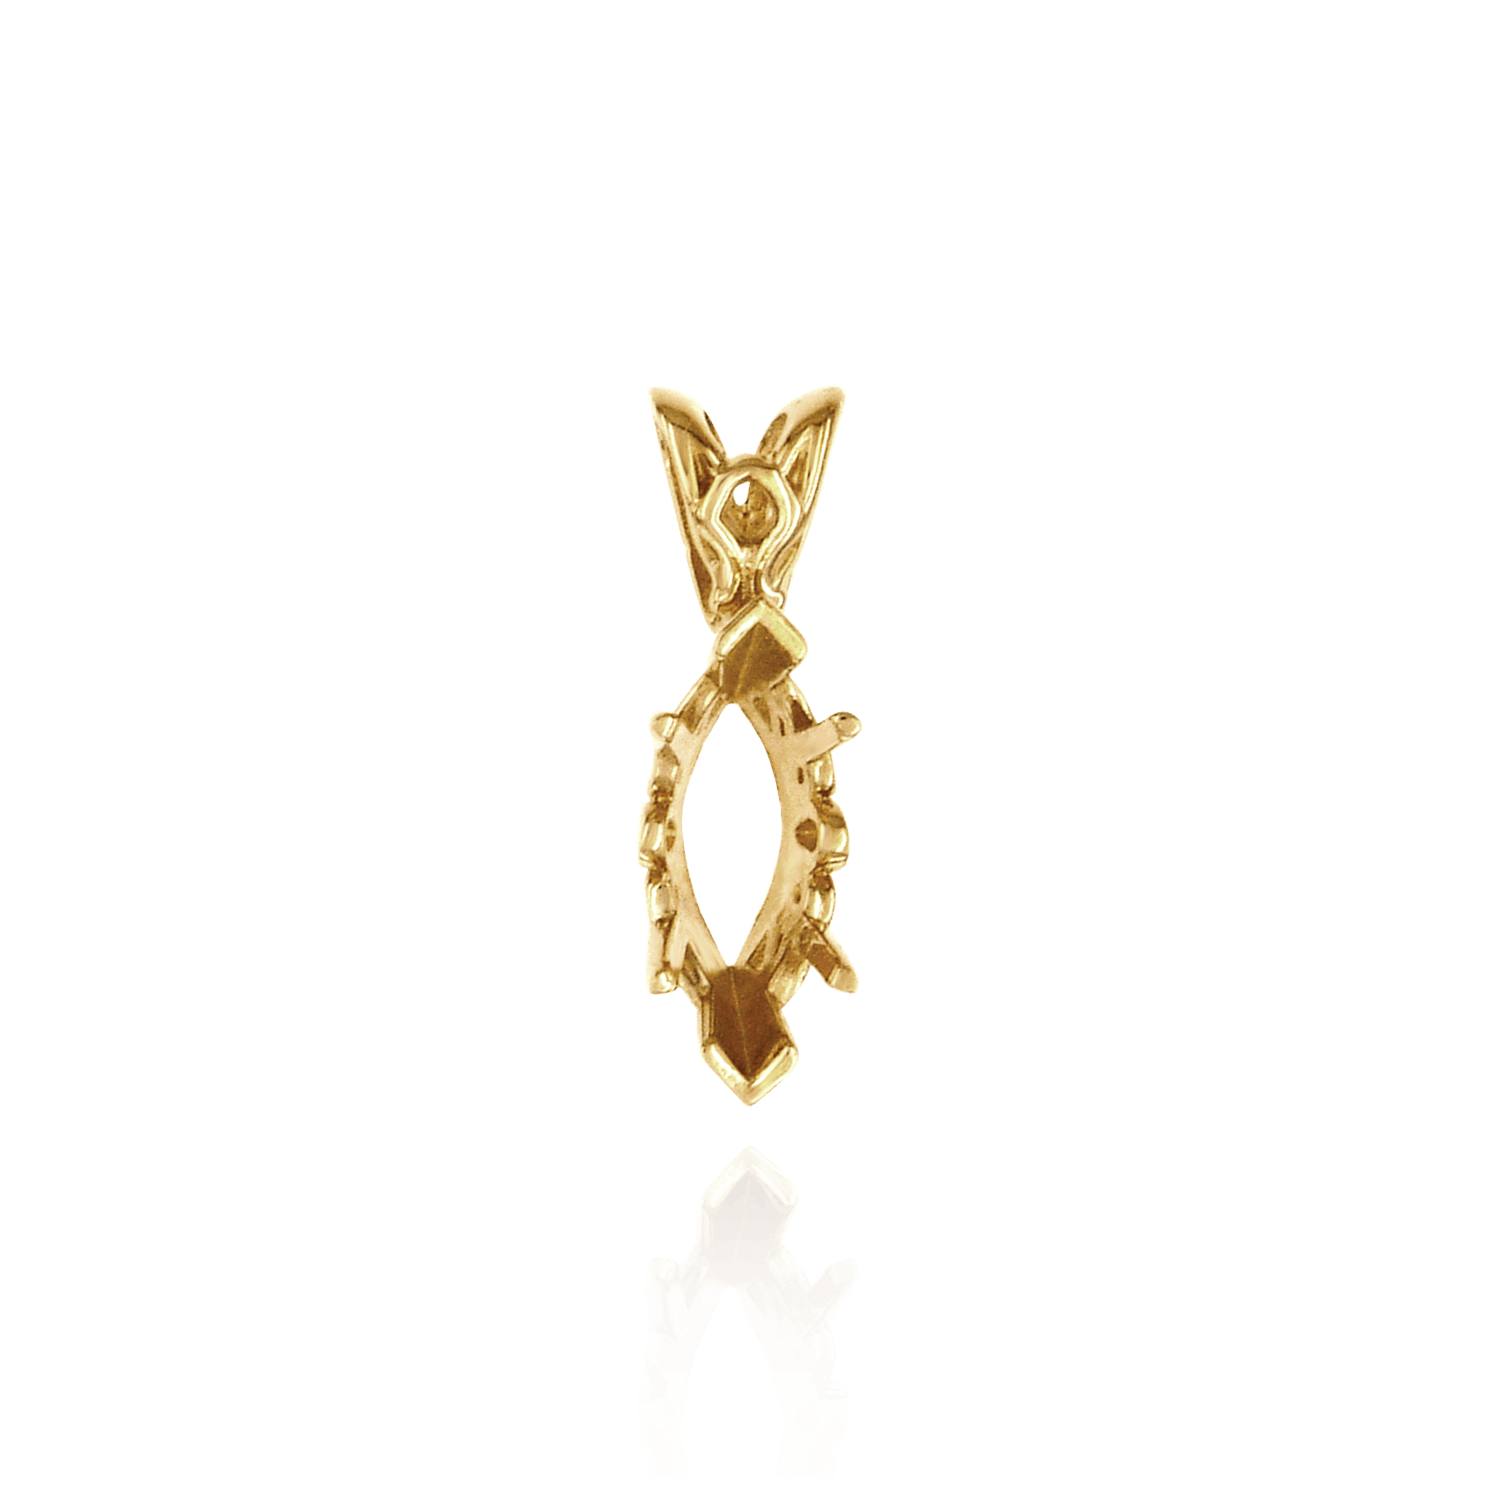 14K Gold Marquise Shape V-end and Four Prong Filigree Pendants in 14K Gold (3mm - 20mm)